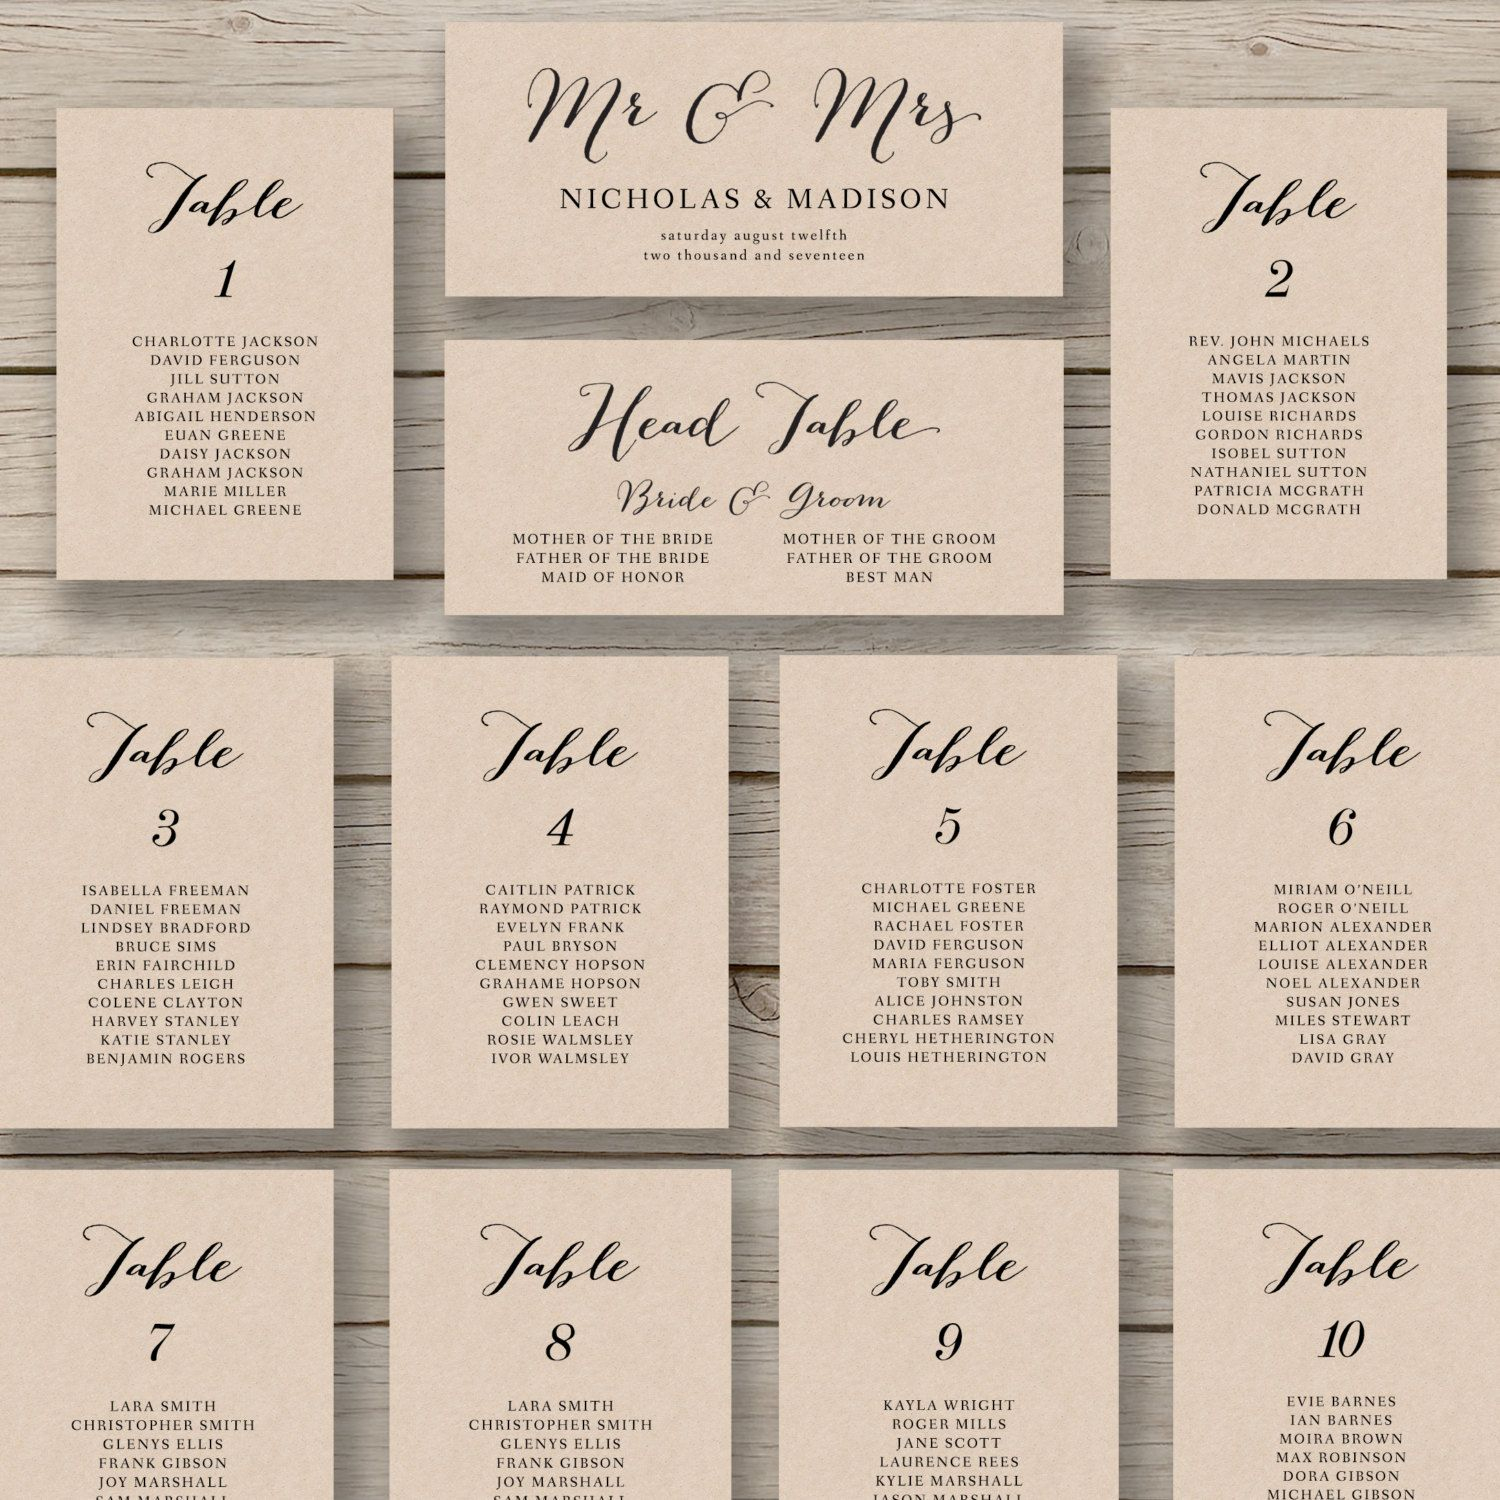 004 Wedding Seating Chart Templates Template ~ Ulyssesroom - Free Printable Wedding Seating Chart Template